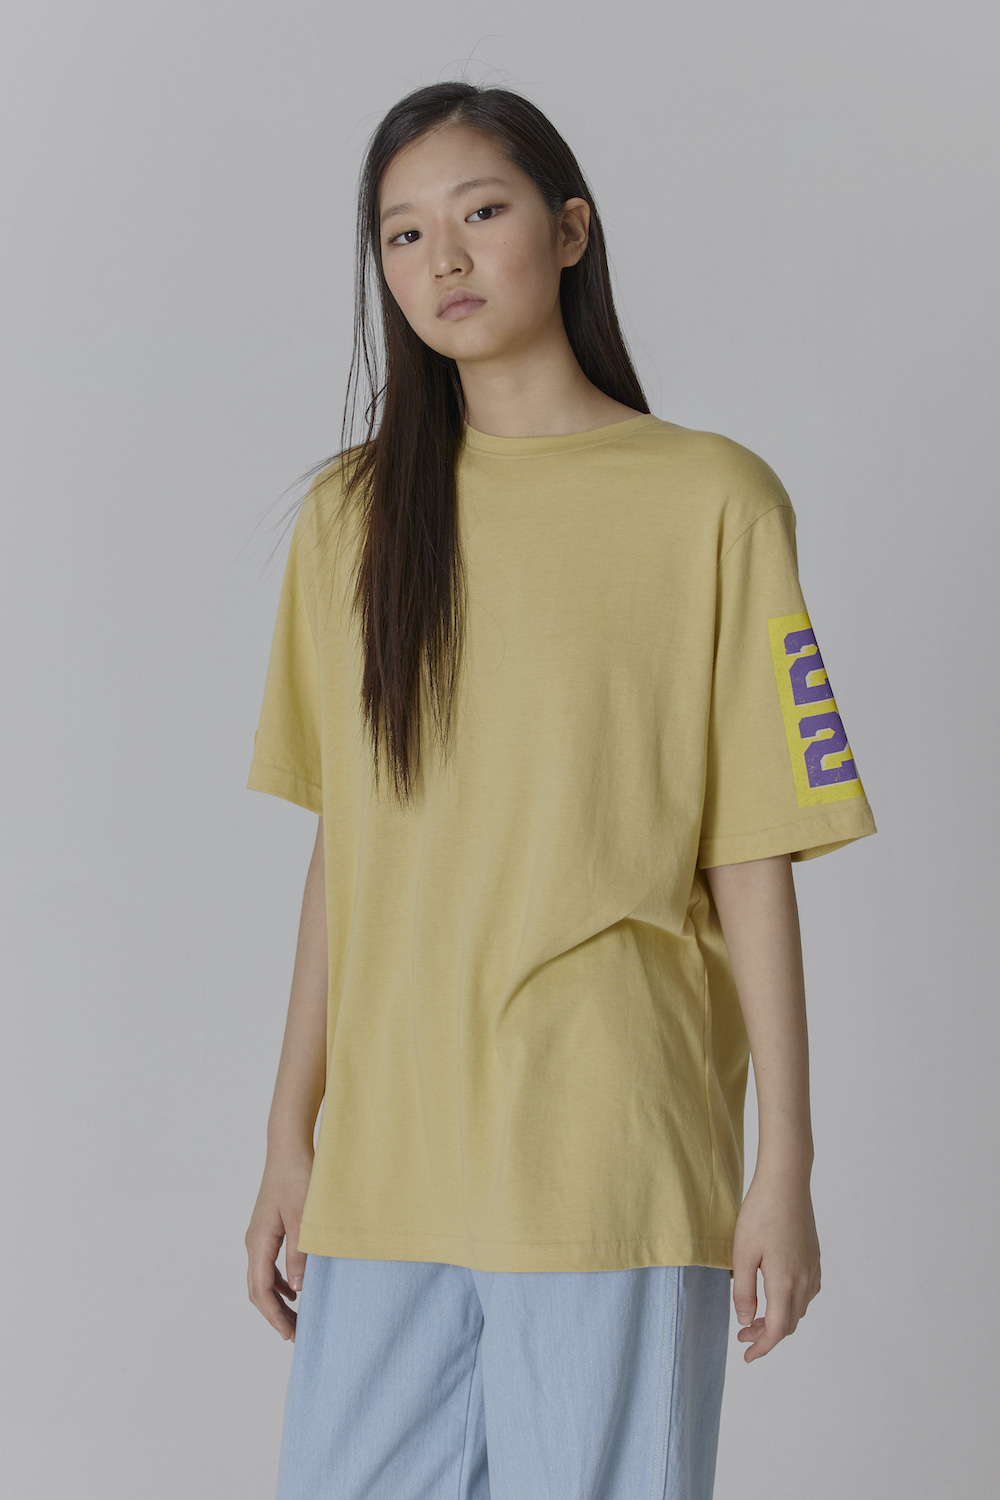 MADE IN SEOUL 2020 SLEEVE T SHIRT MUSTARD